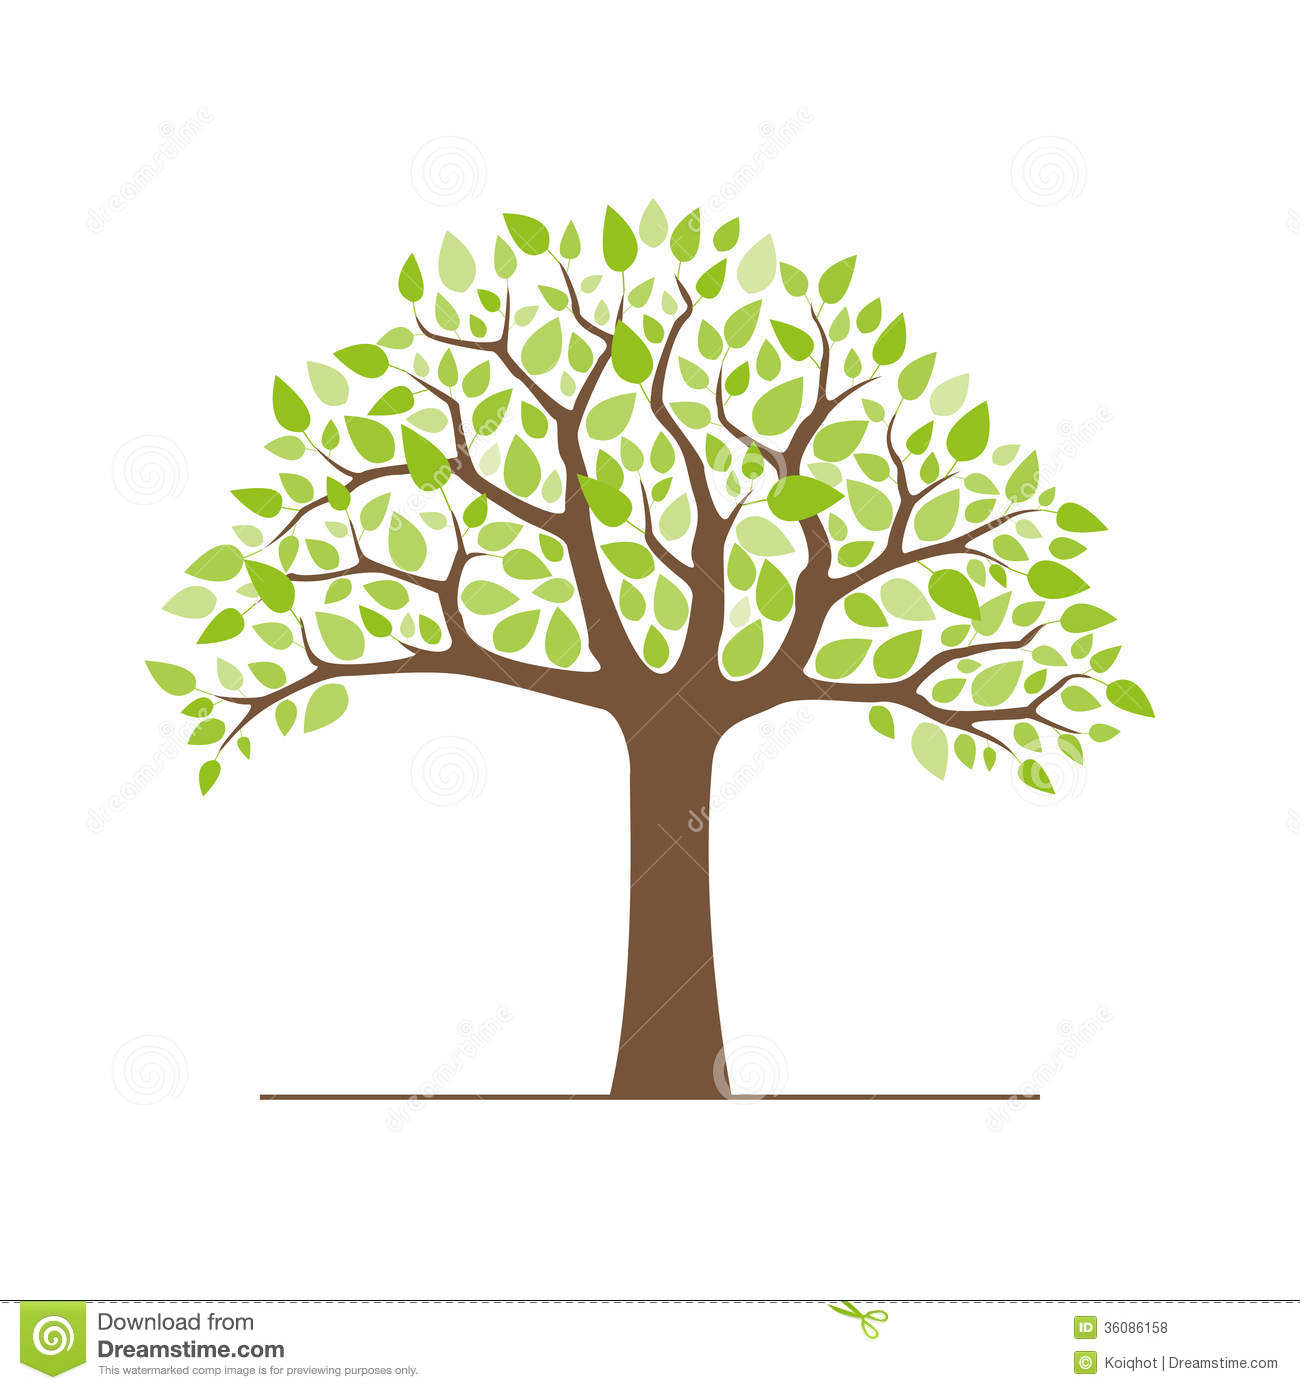 Tree With Green Leaves Royalty Free Stock Photos - Image: 36086158